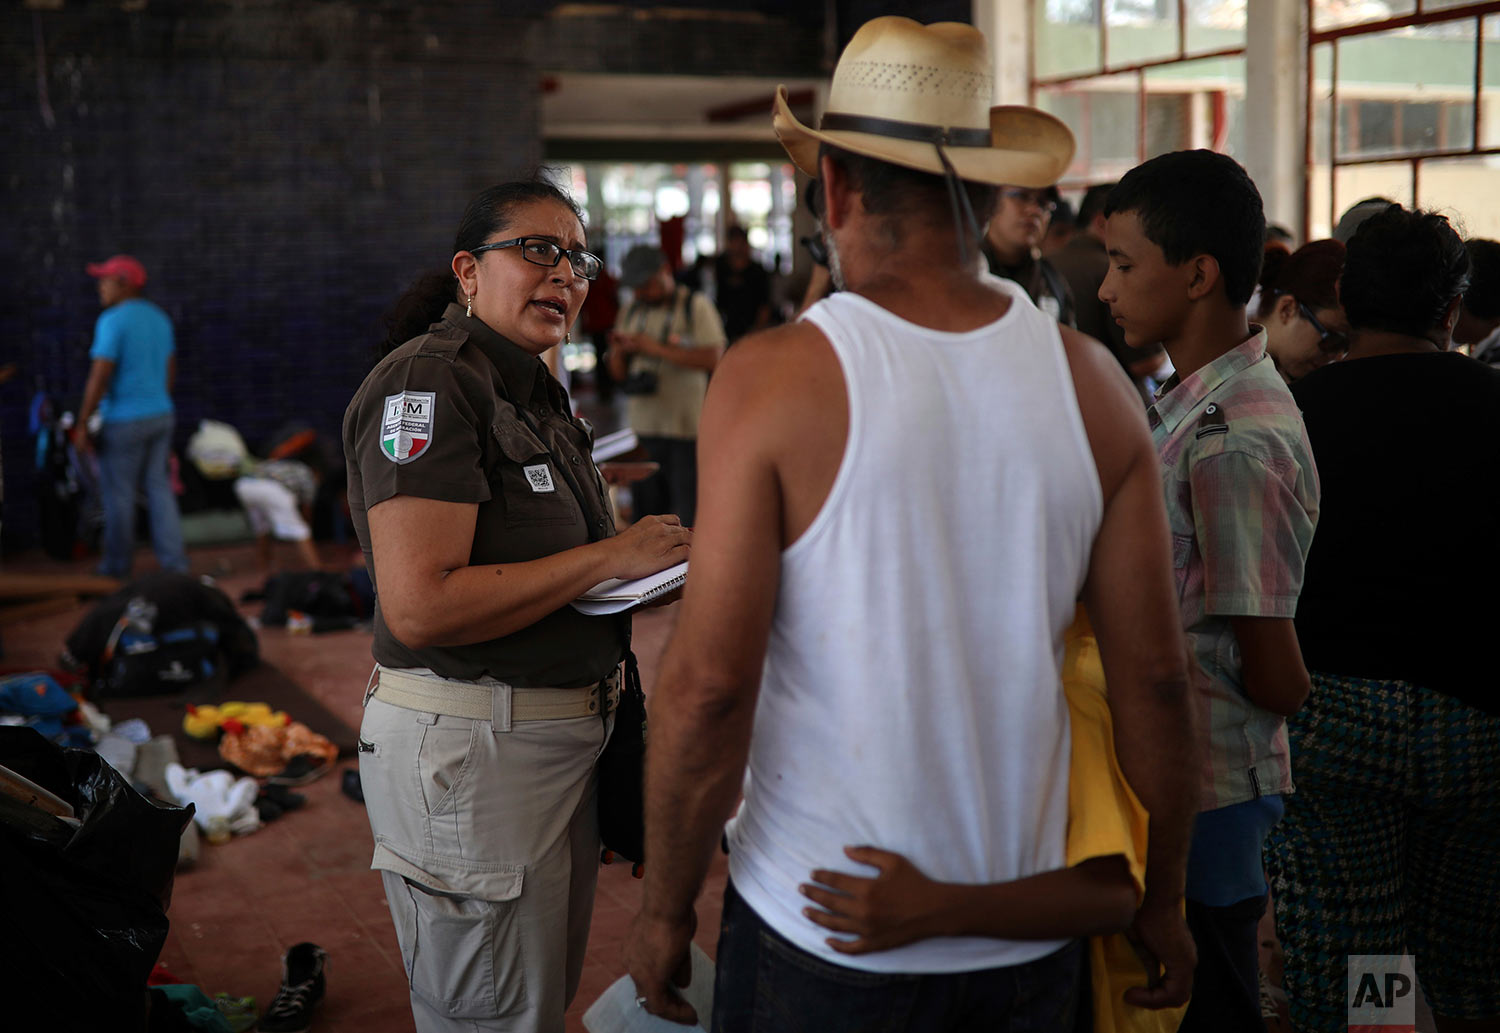 A Mexican immigration official attends a Honduran family participating in the Migrant Stations of the Cross caravan that's making a stop at a sports club in Matias Romero, Oaxaca State, Mexico, Tuesday, April 3, 2018. (AP Photo/Felix Marquez)